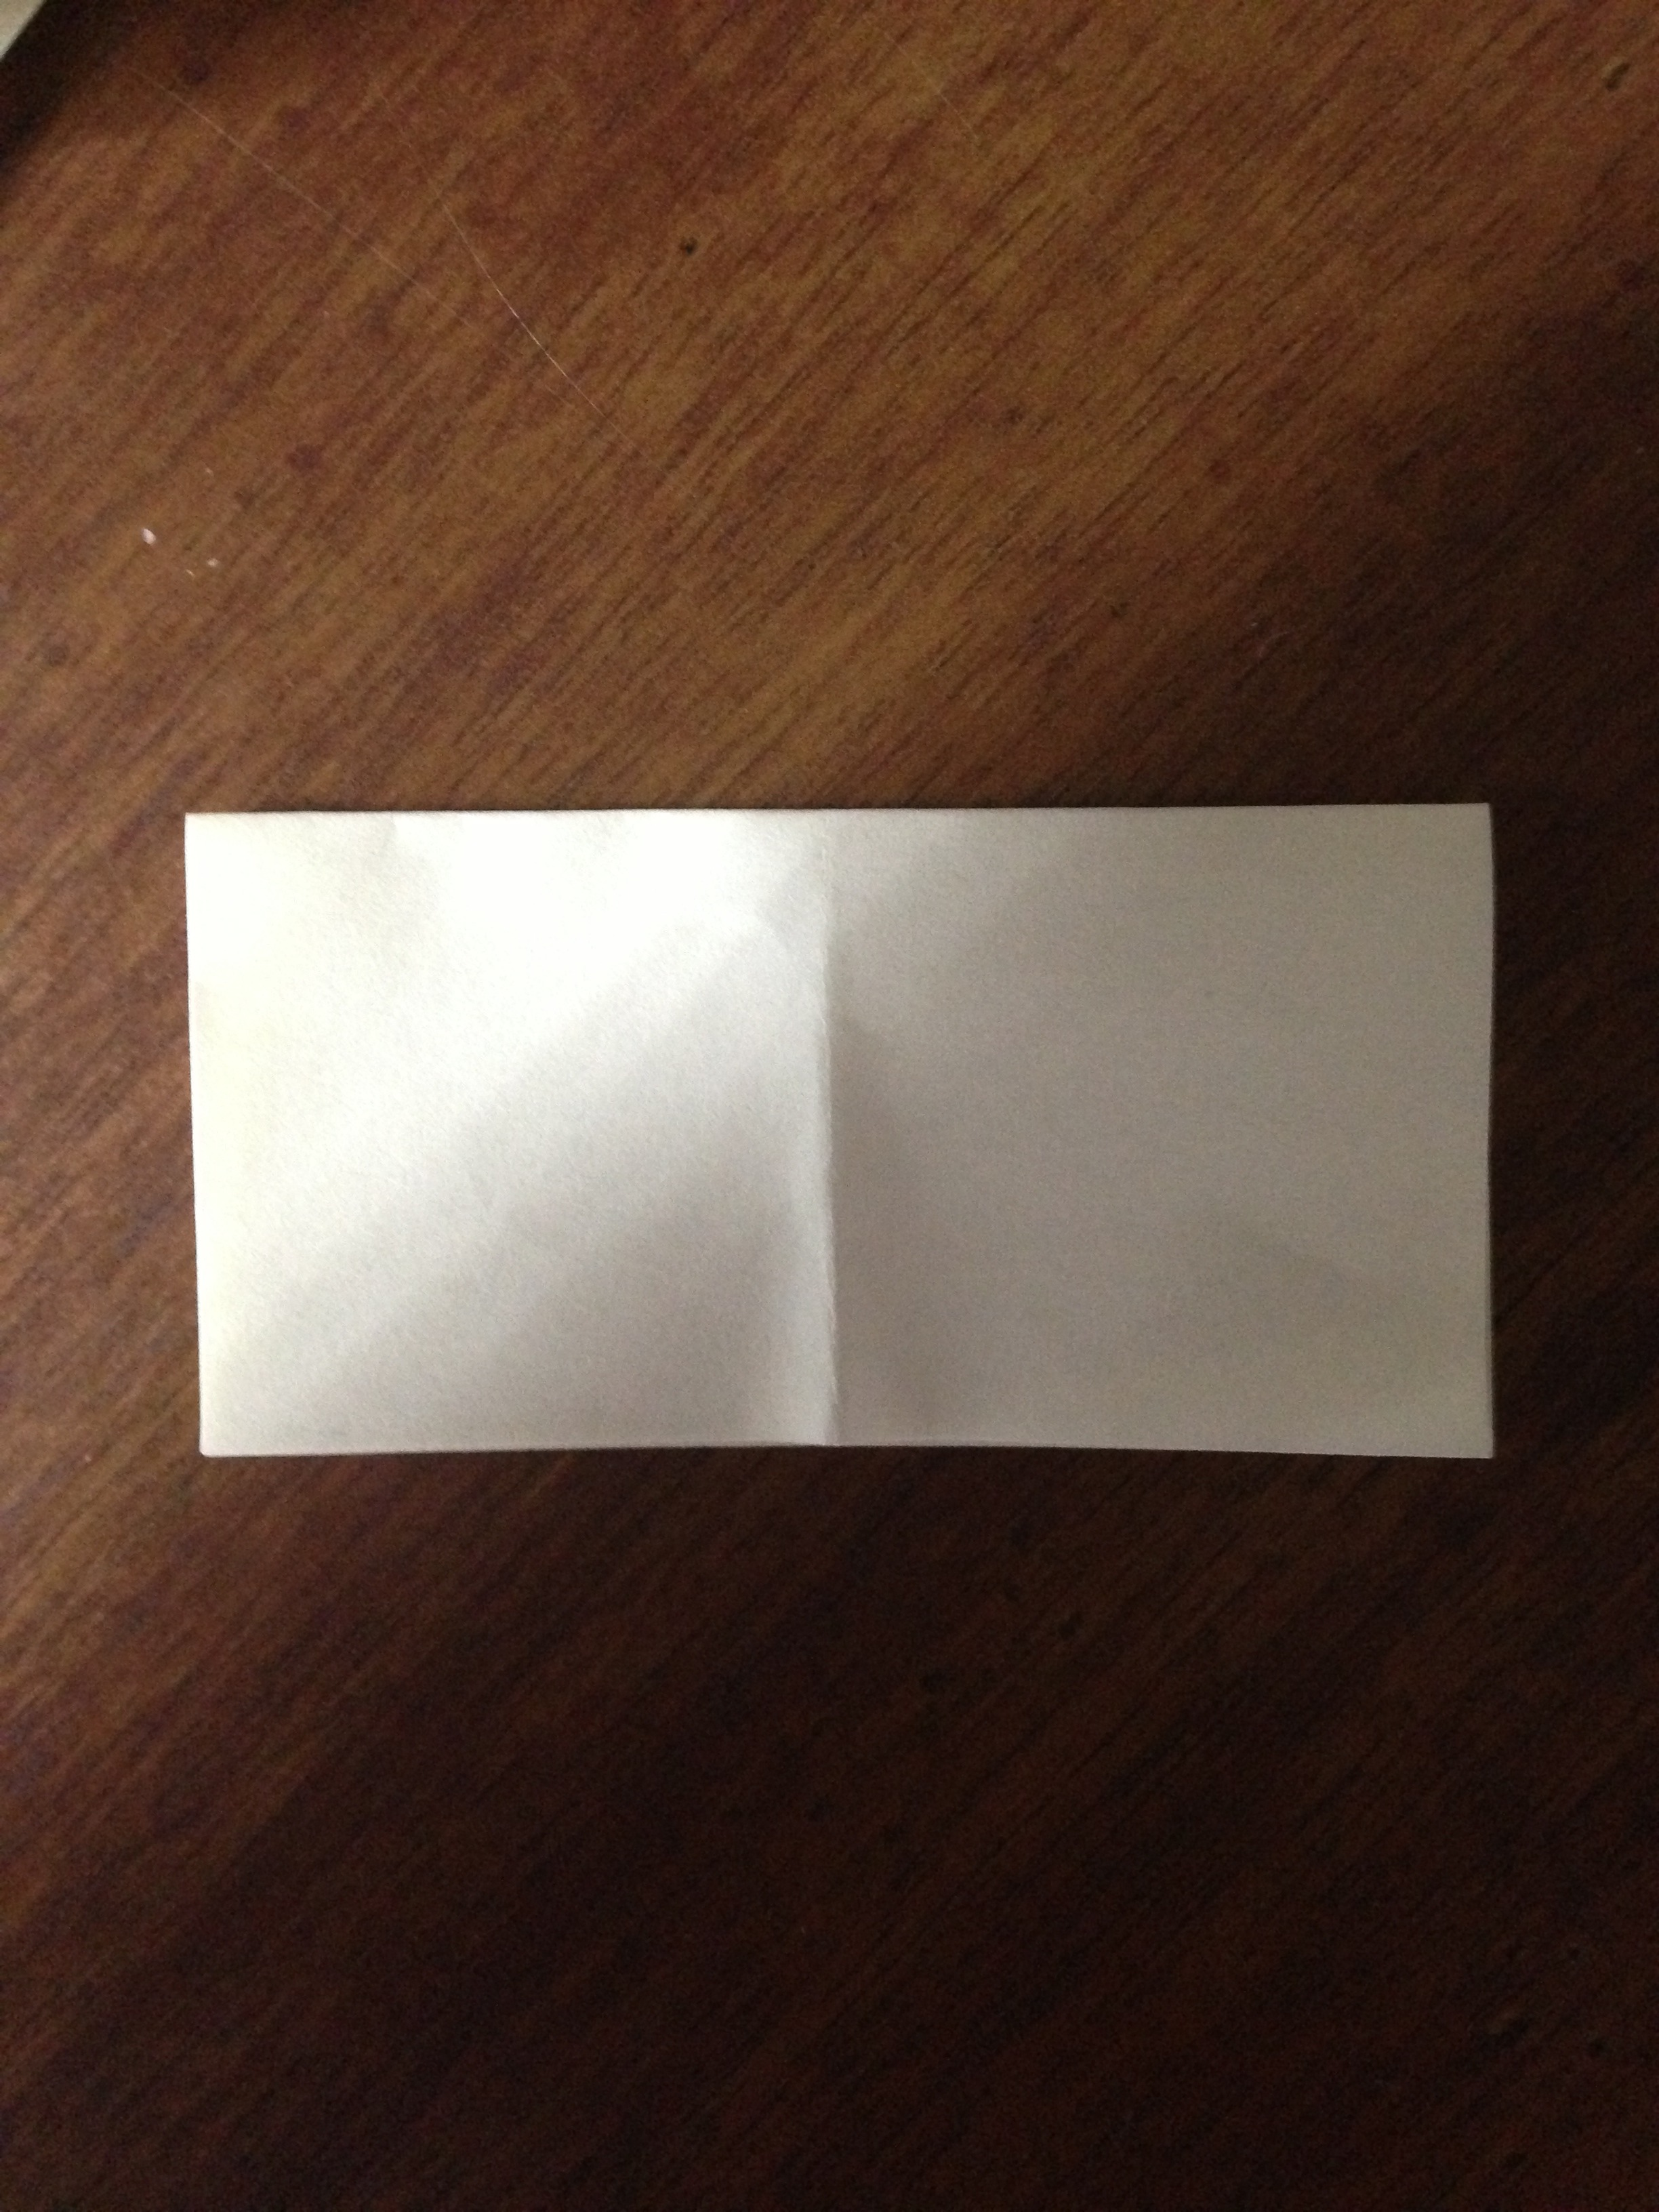 Picture of Fold in Half Other Way